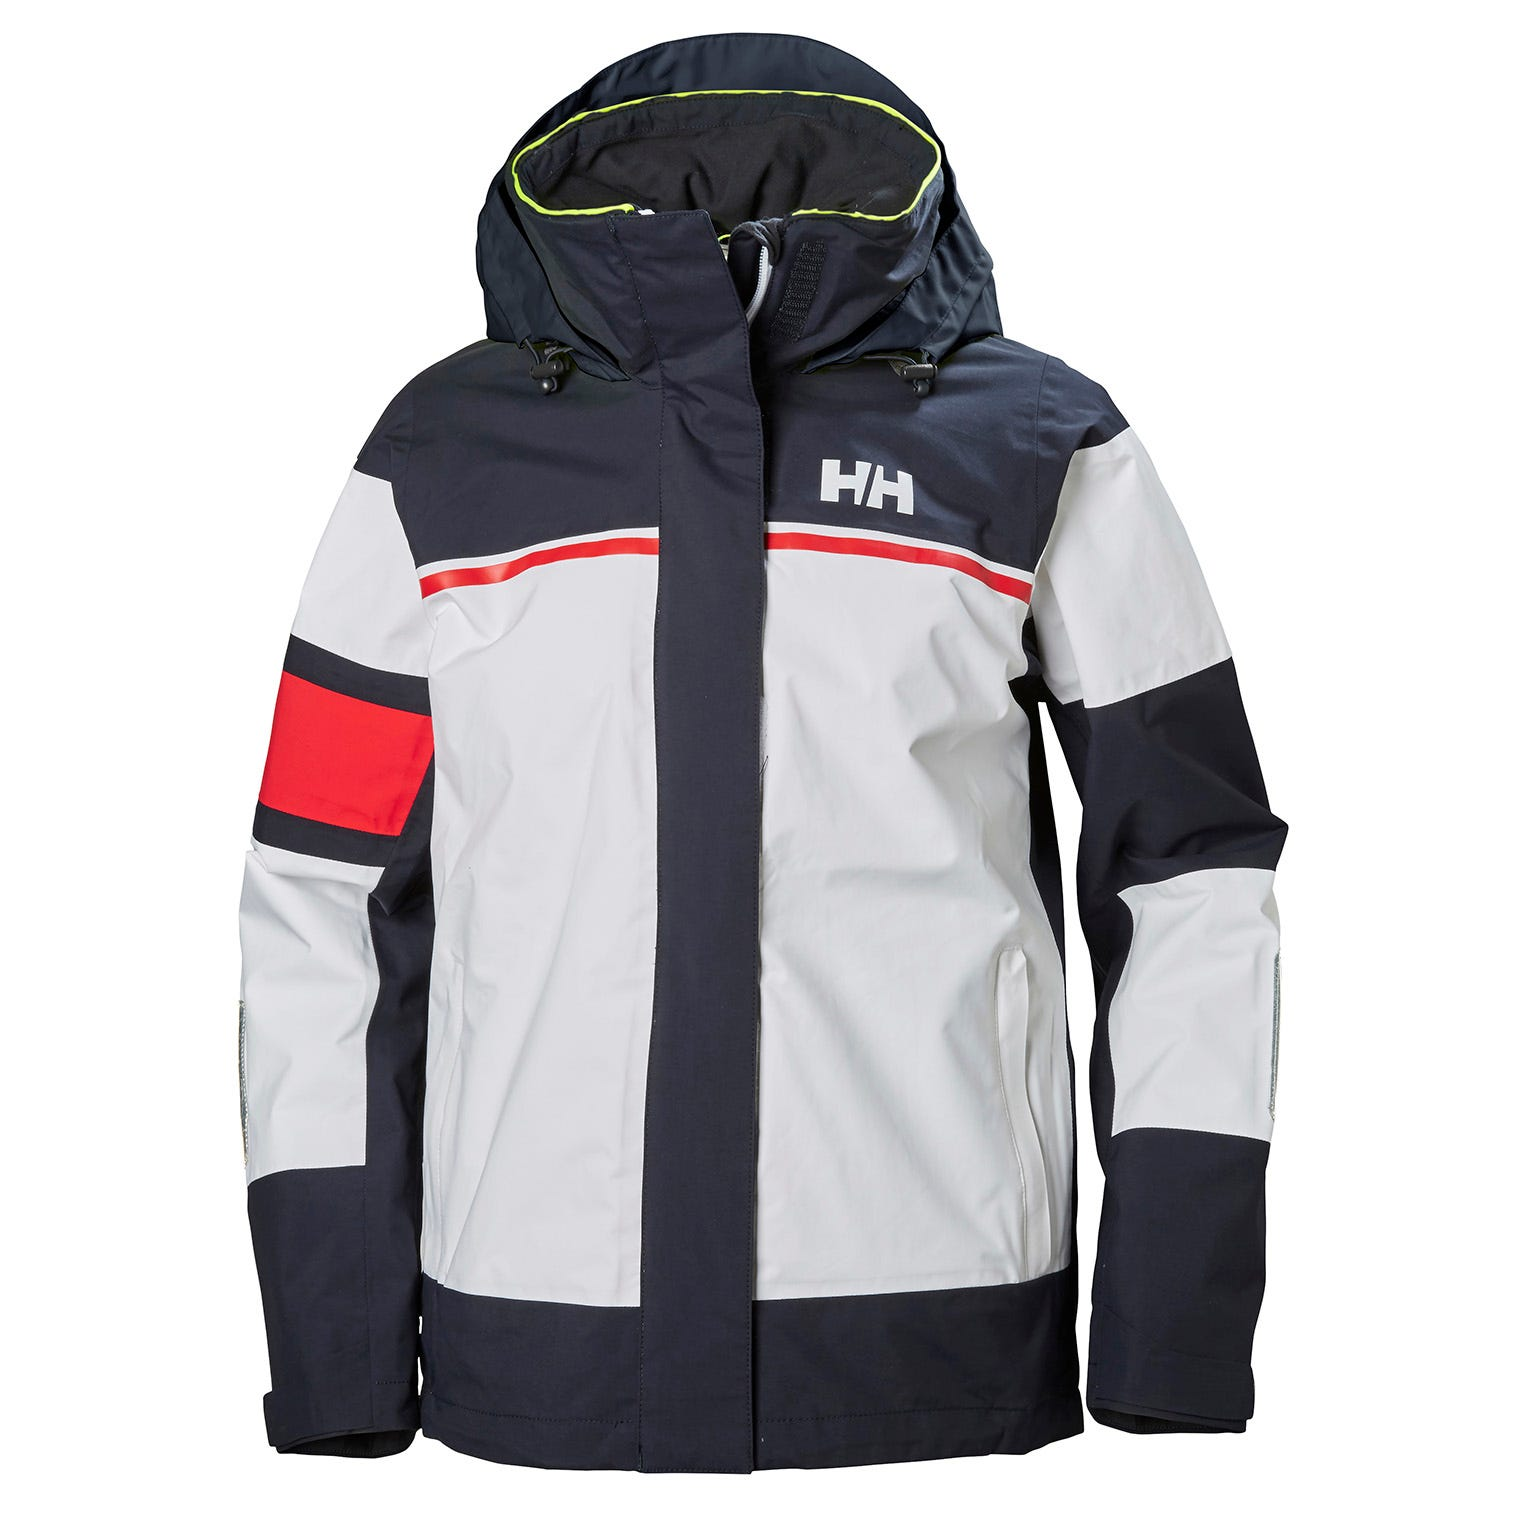 a92032c94d8 W SALT LIGHT JACKET